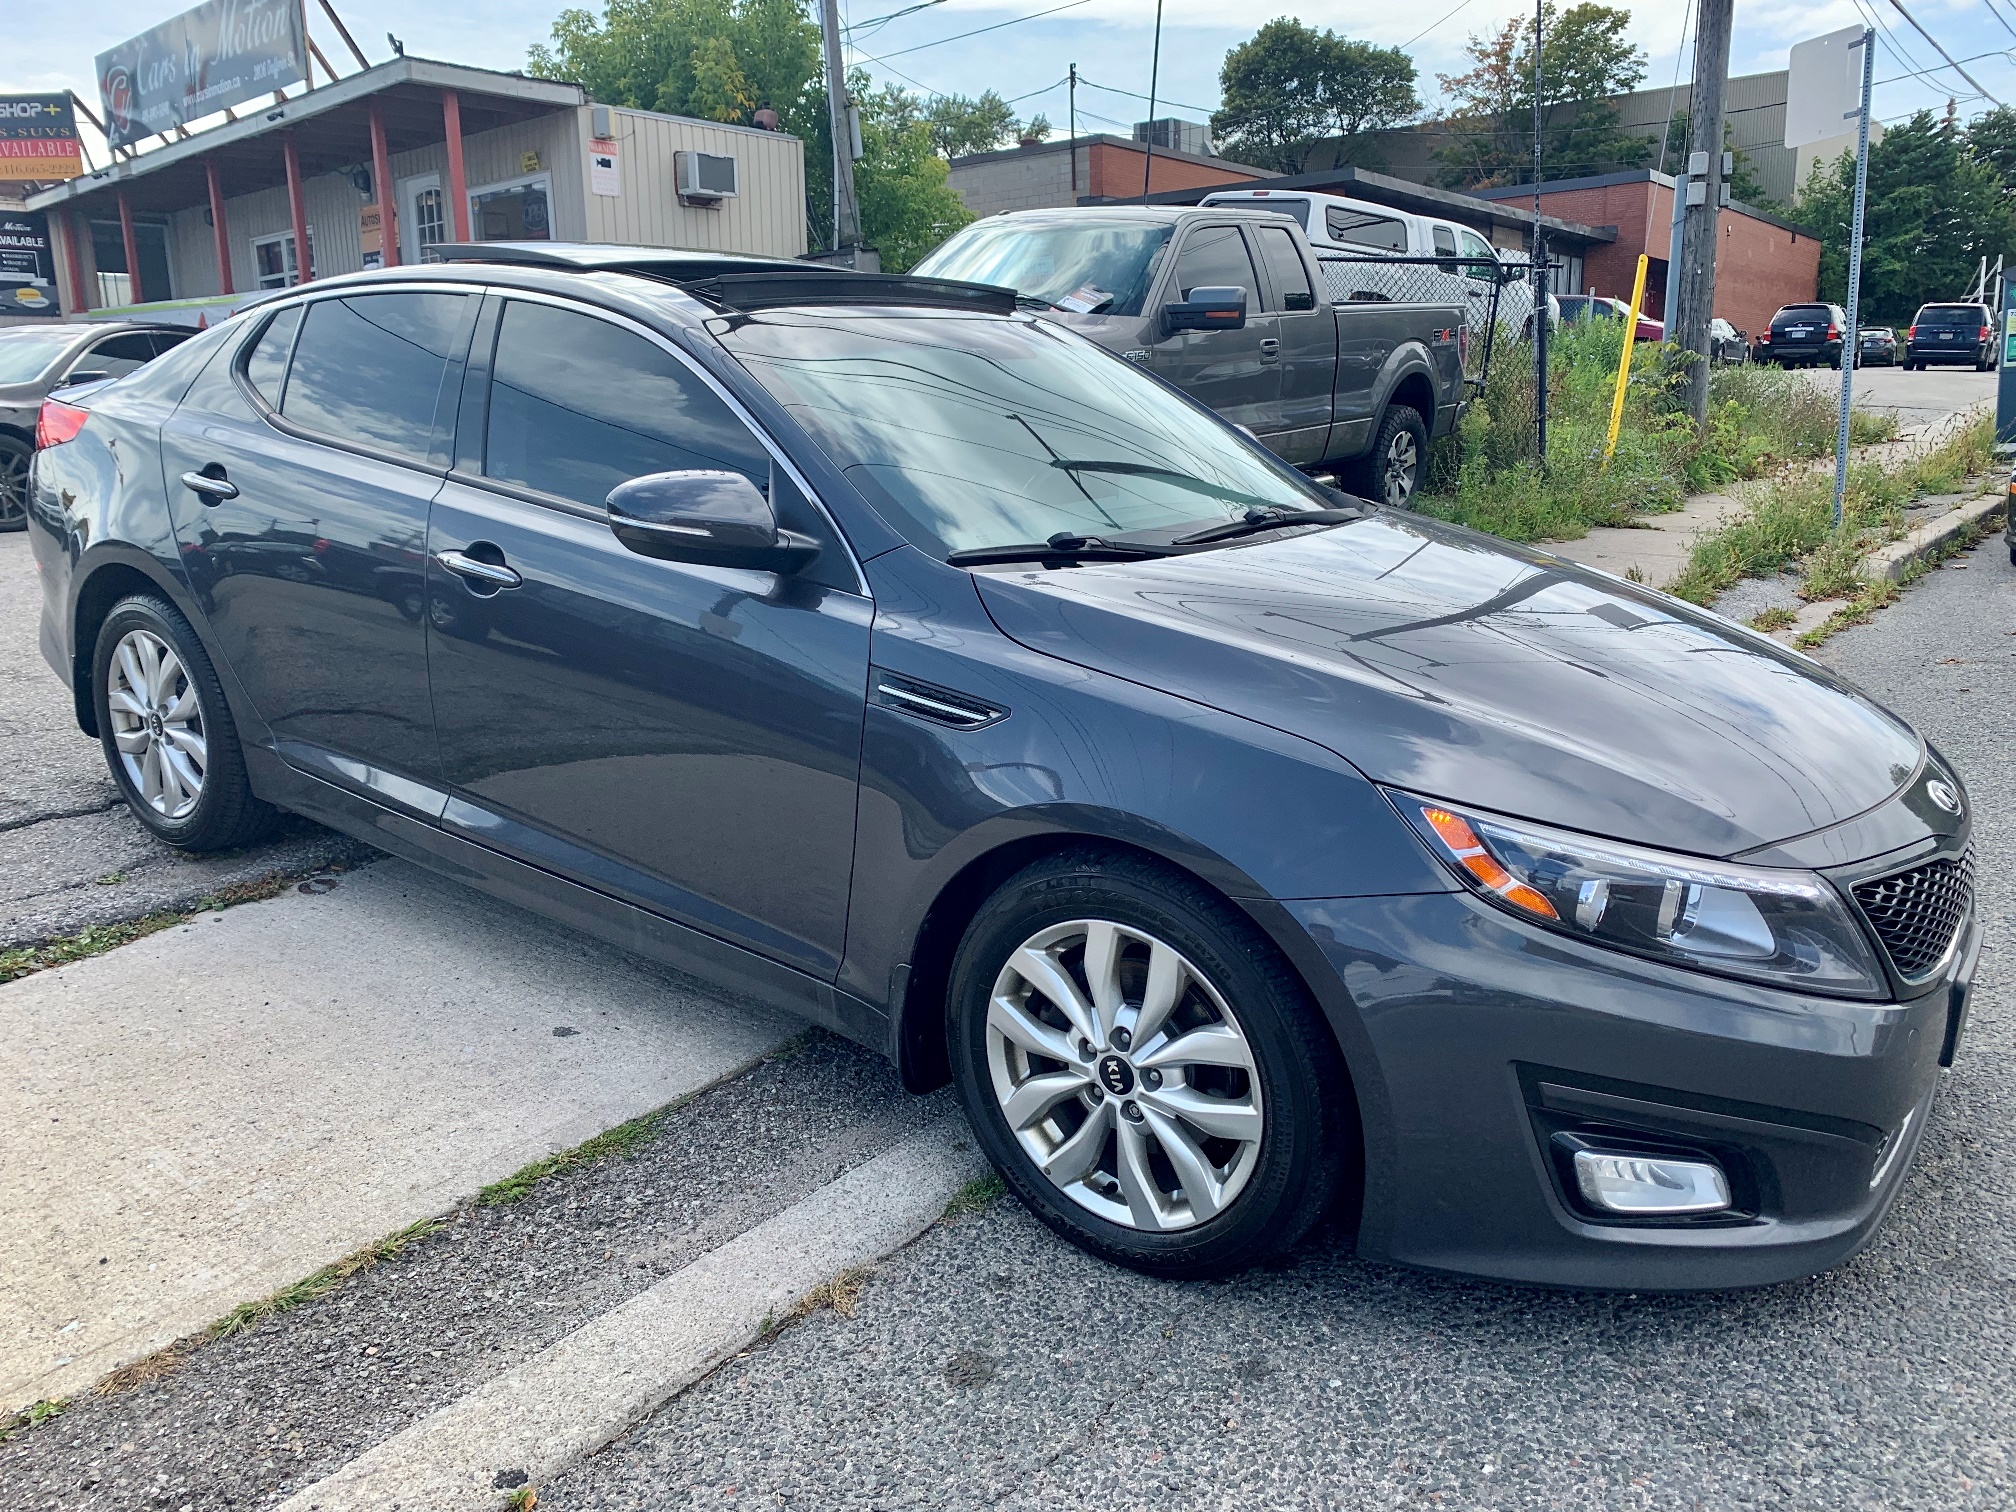 Kia Optima Ex Luxury 2015 | Nav | Rev Cam | Pano Roof - 2022 Kia Optima Grey Configurations, Safety Update, Specs